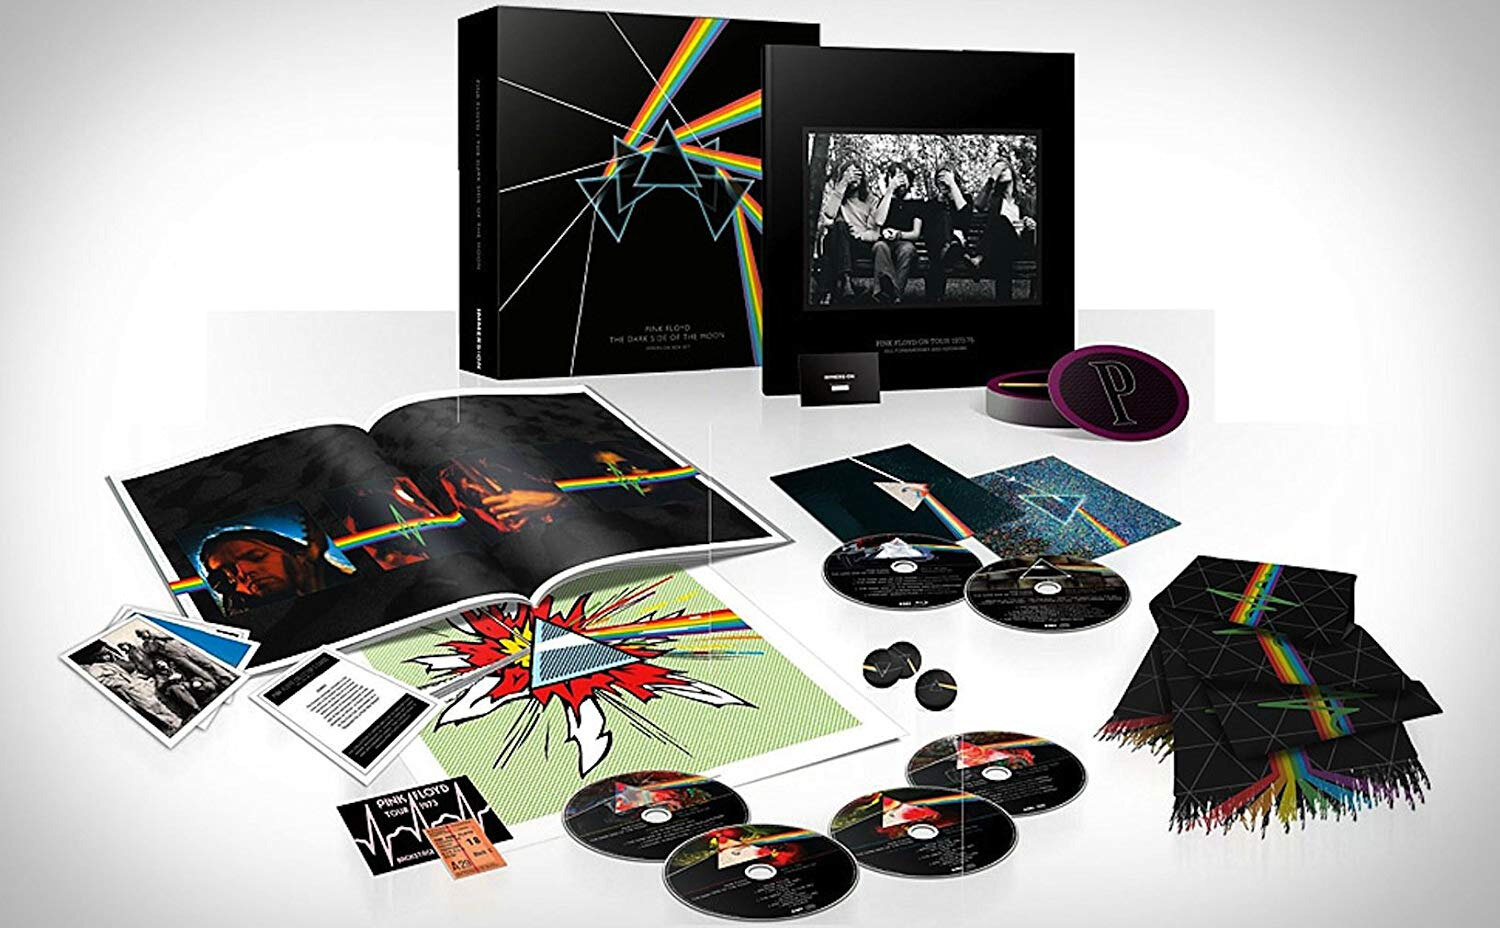 Pink Floyd - The dark side of the moon - Immersion box set